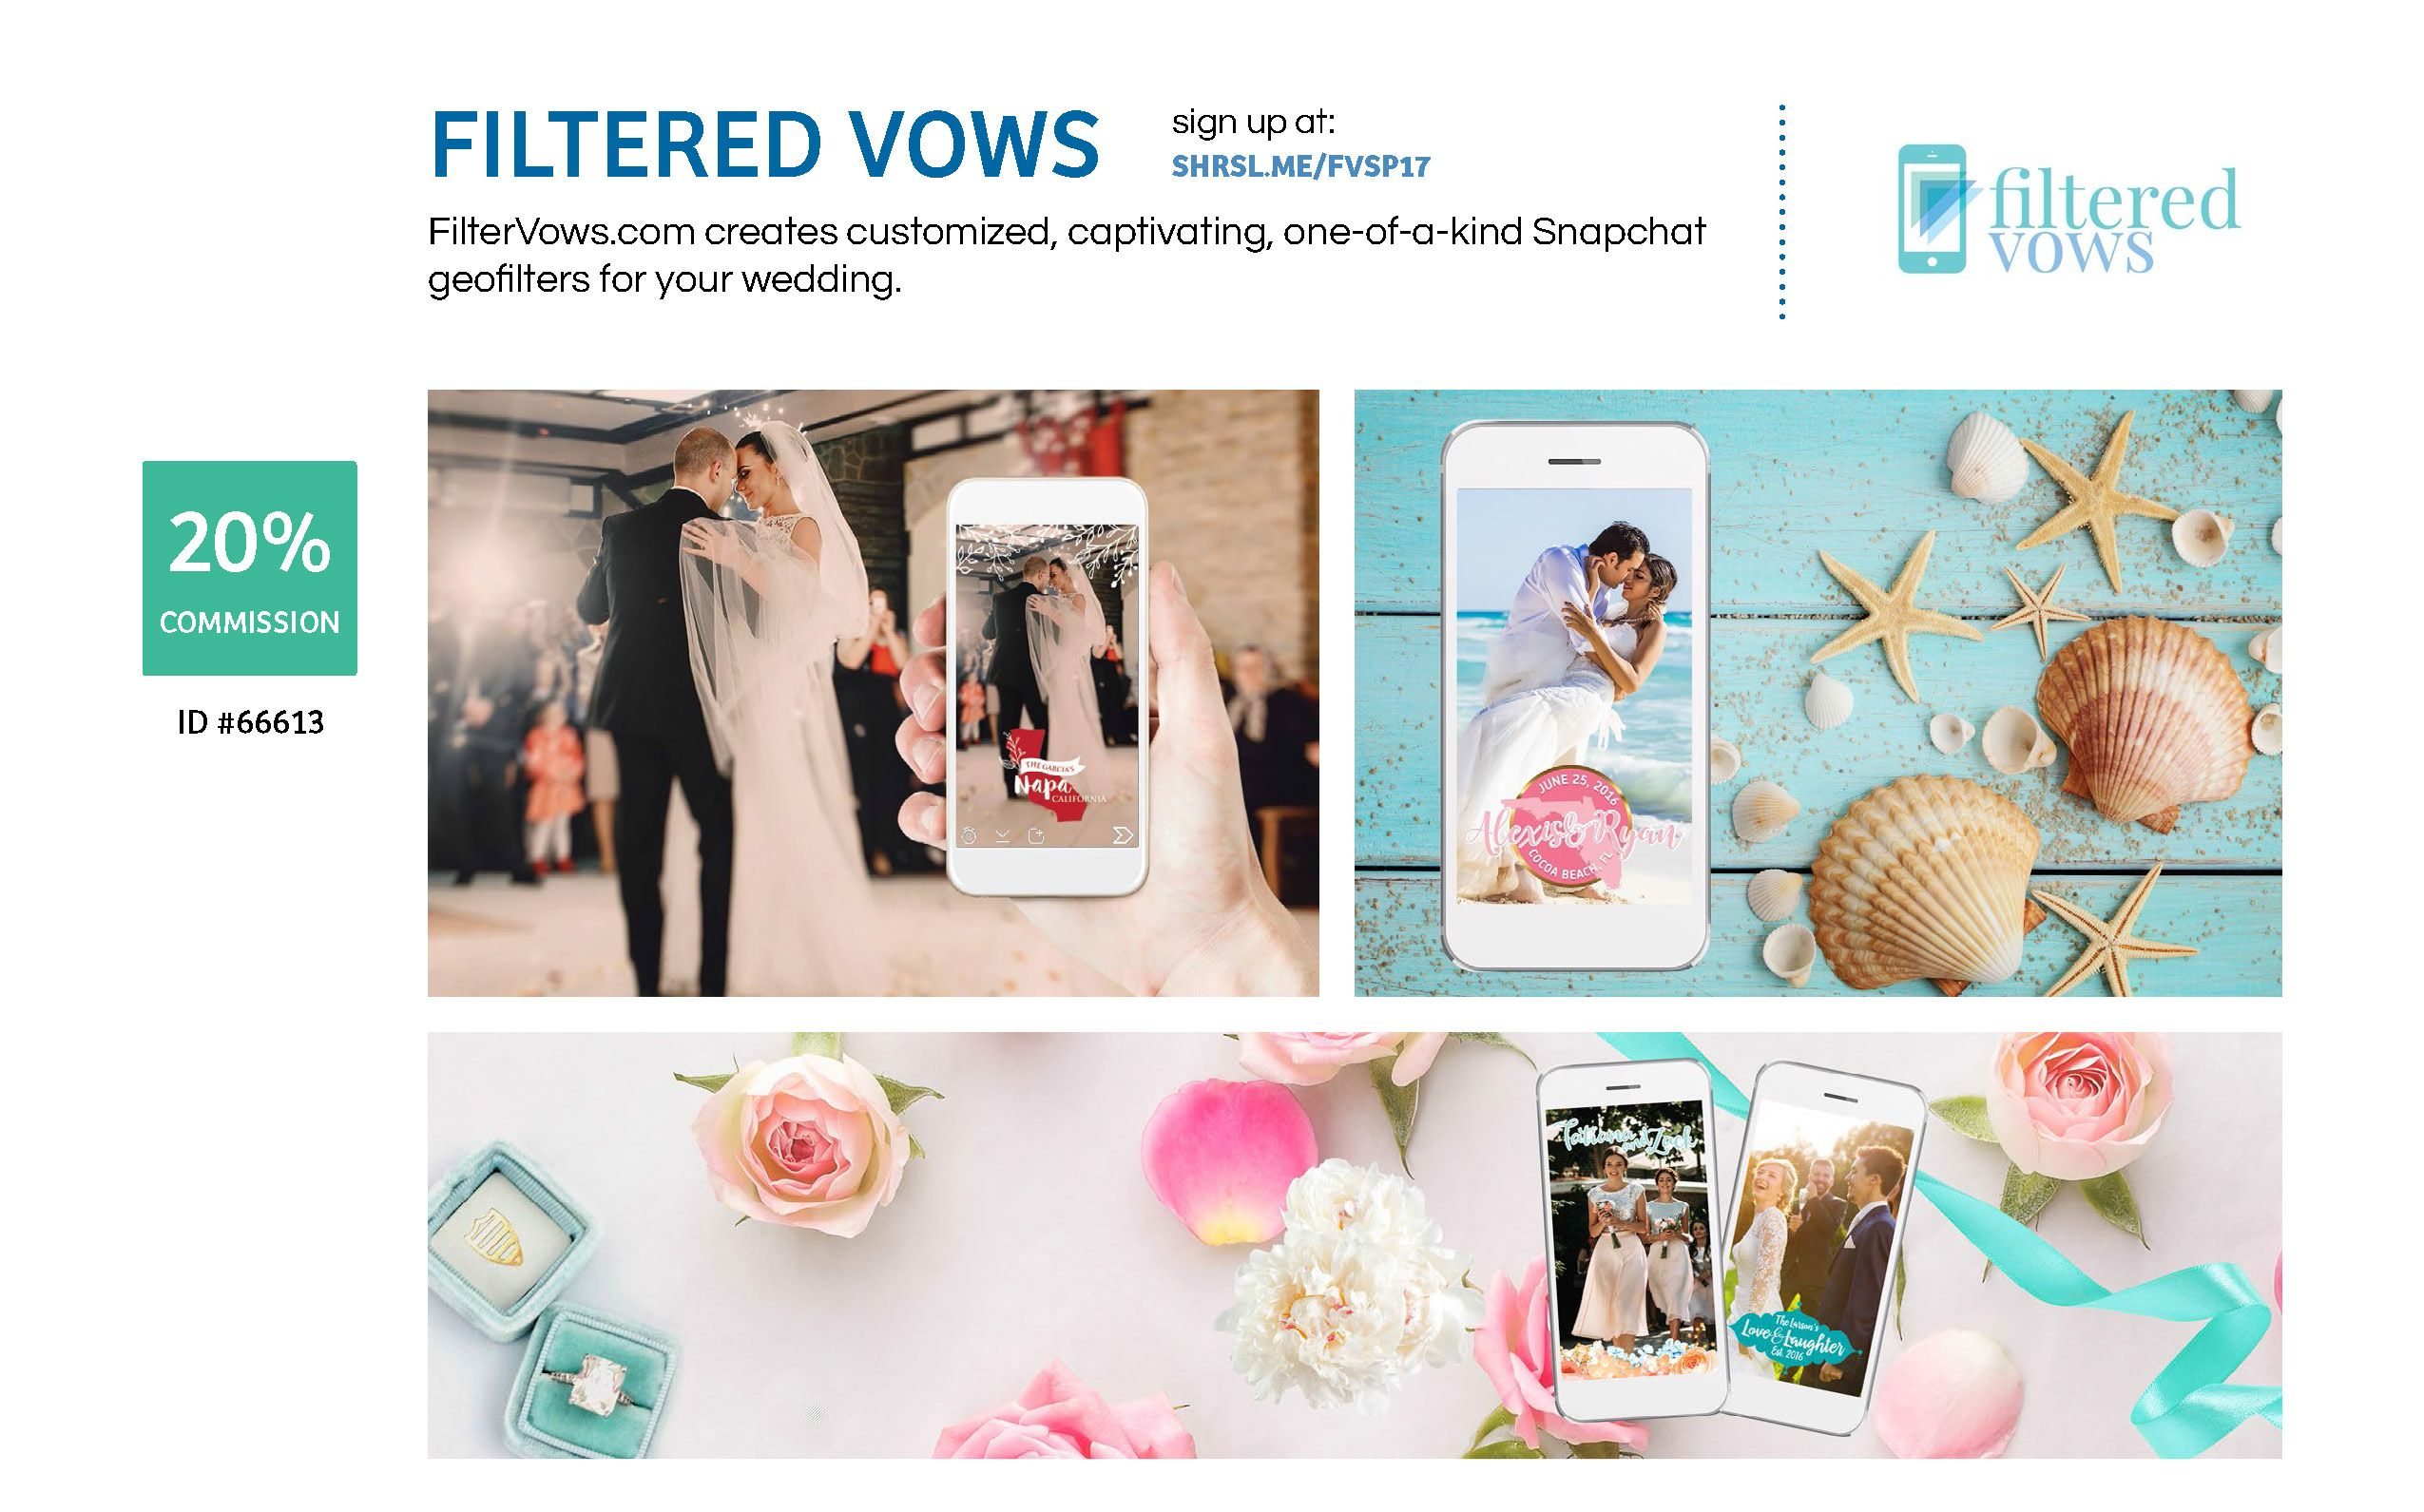 FilterVows.com creates customized, captivating, one-of-a-kind Snapchat geofilters for your wedding. #wedding